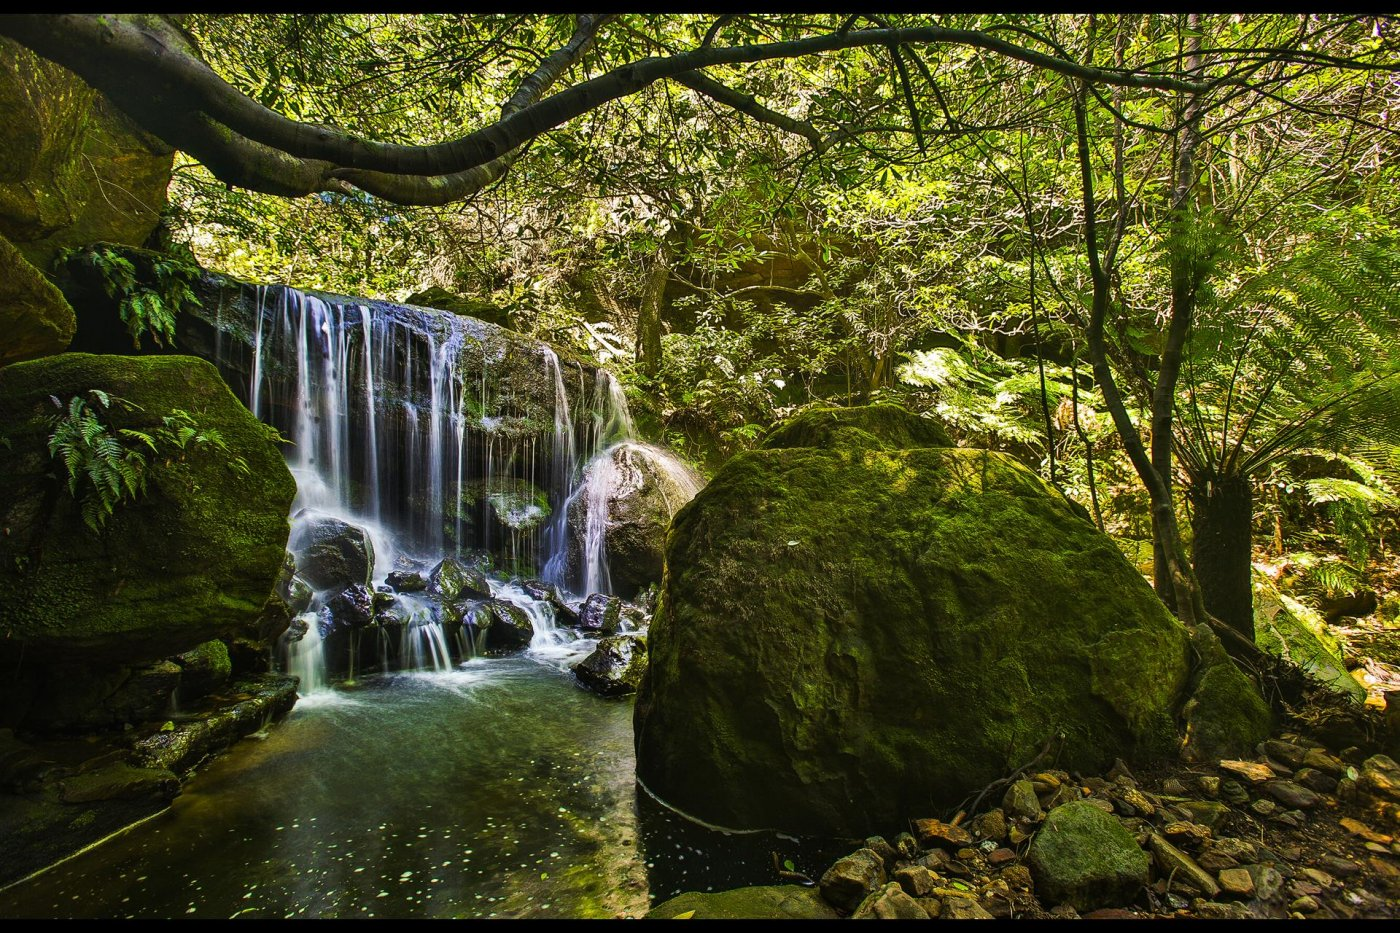 Фото 4794-1 (Copy).jpg. Австралия, New South Wales, Blue Mountains National Park, Hurley Heights Trail